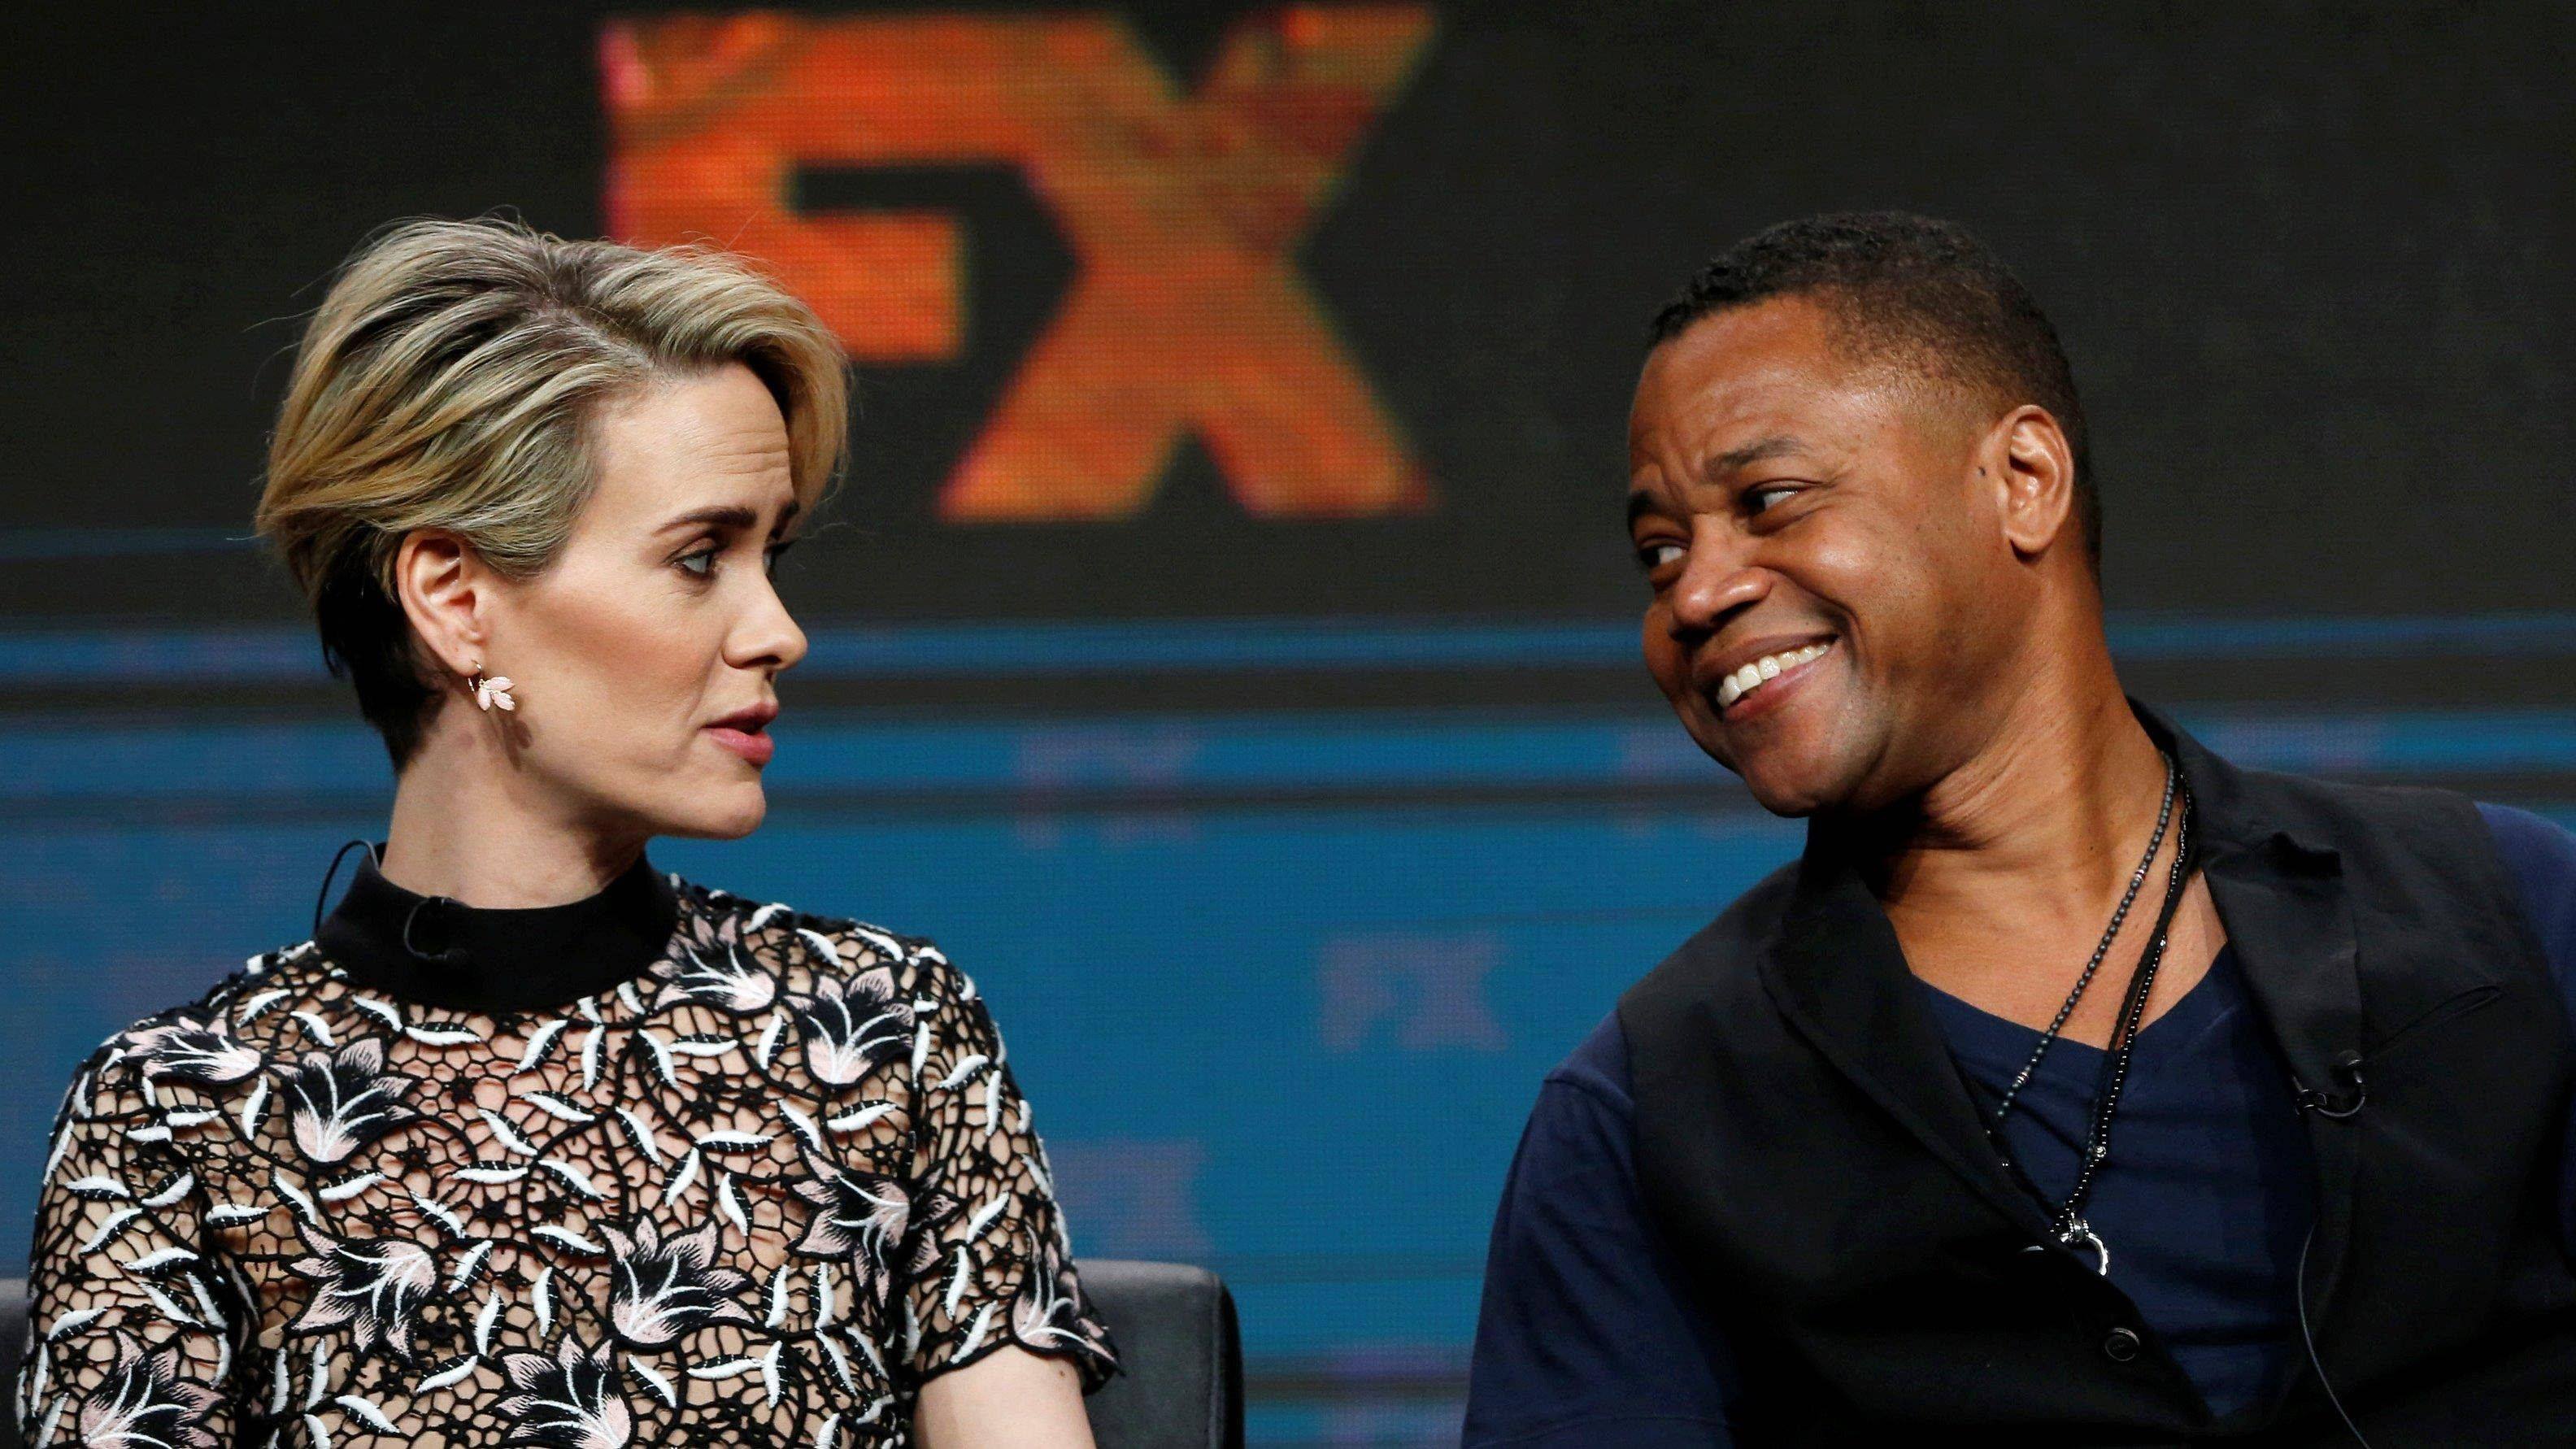 Cuba Gooding Jr. reacts to Sarah Paulson skirt-lift outrage